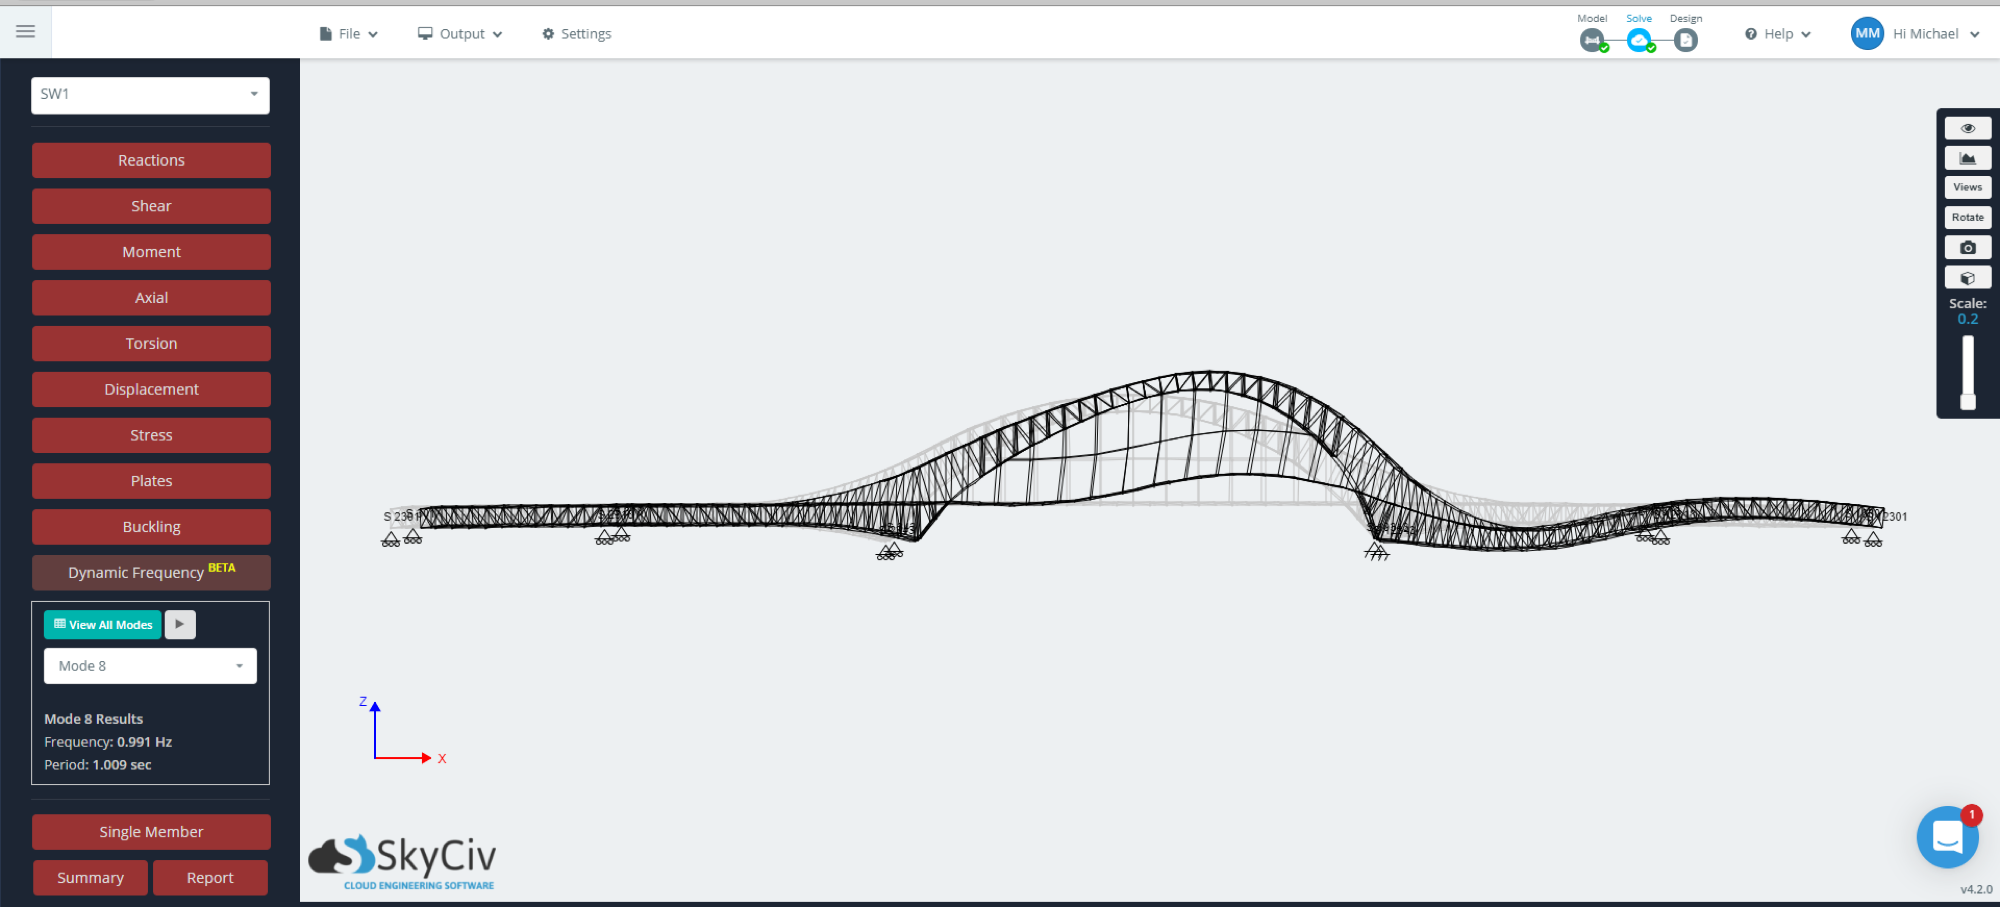 bridge-modal-results-skyciv-structural-analysis-software